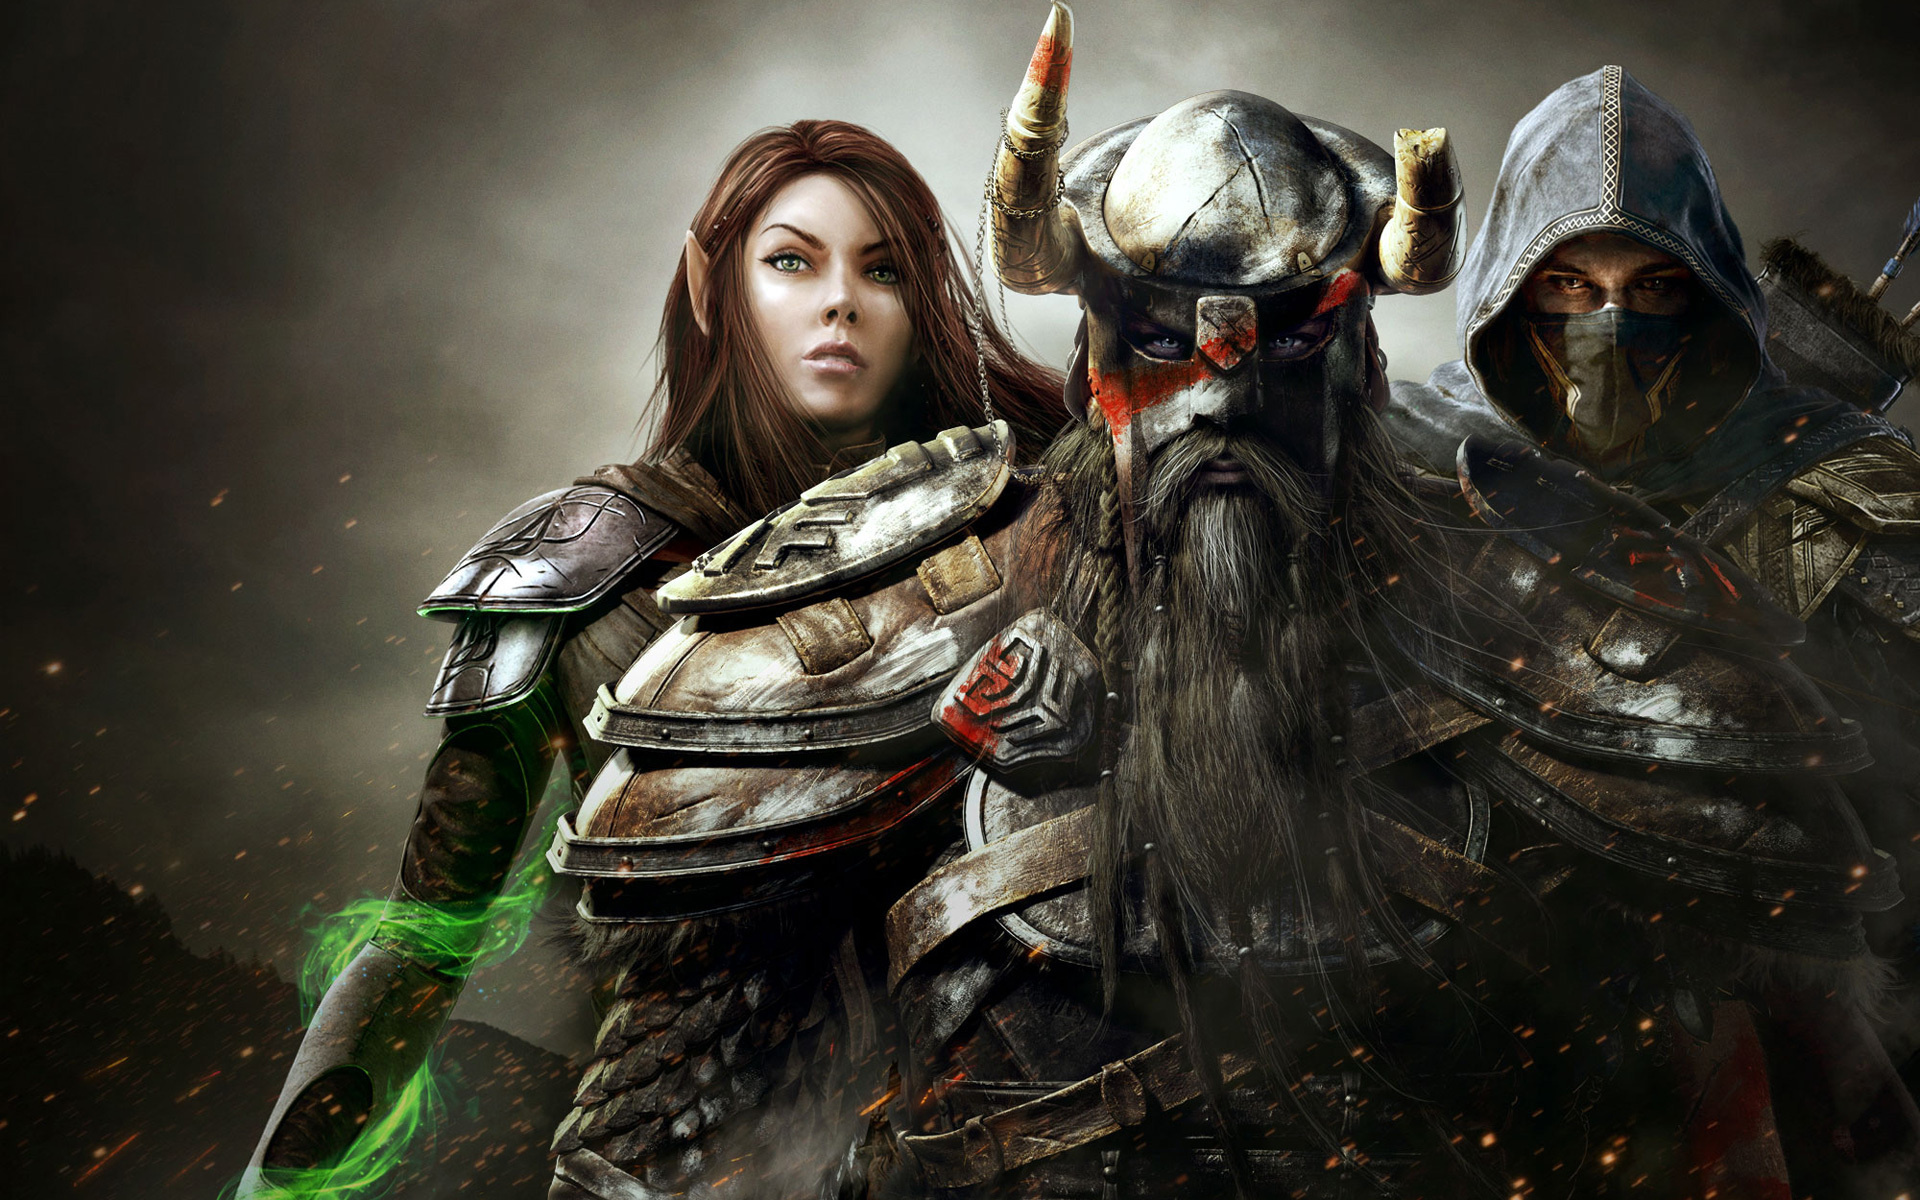 Elder Scrolls 6 Wallpaper: The Elder Scrolls Online Full HD Wallpaper And Background